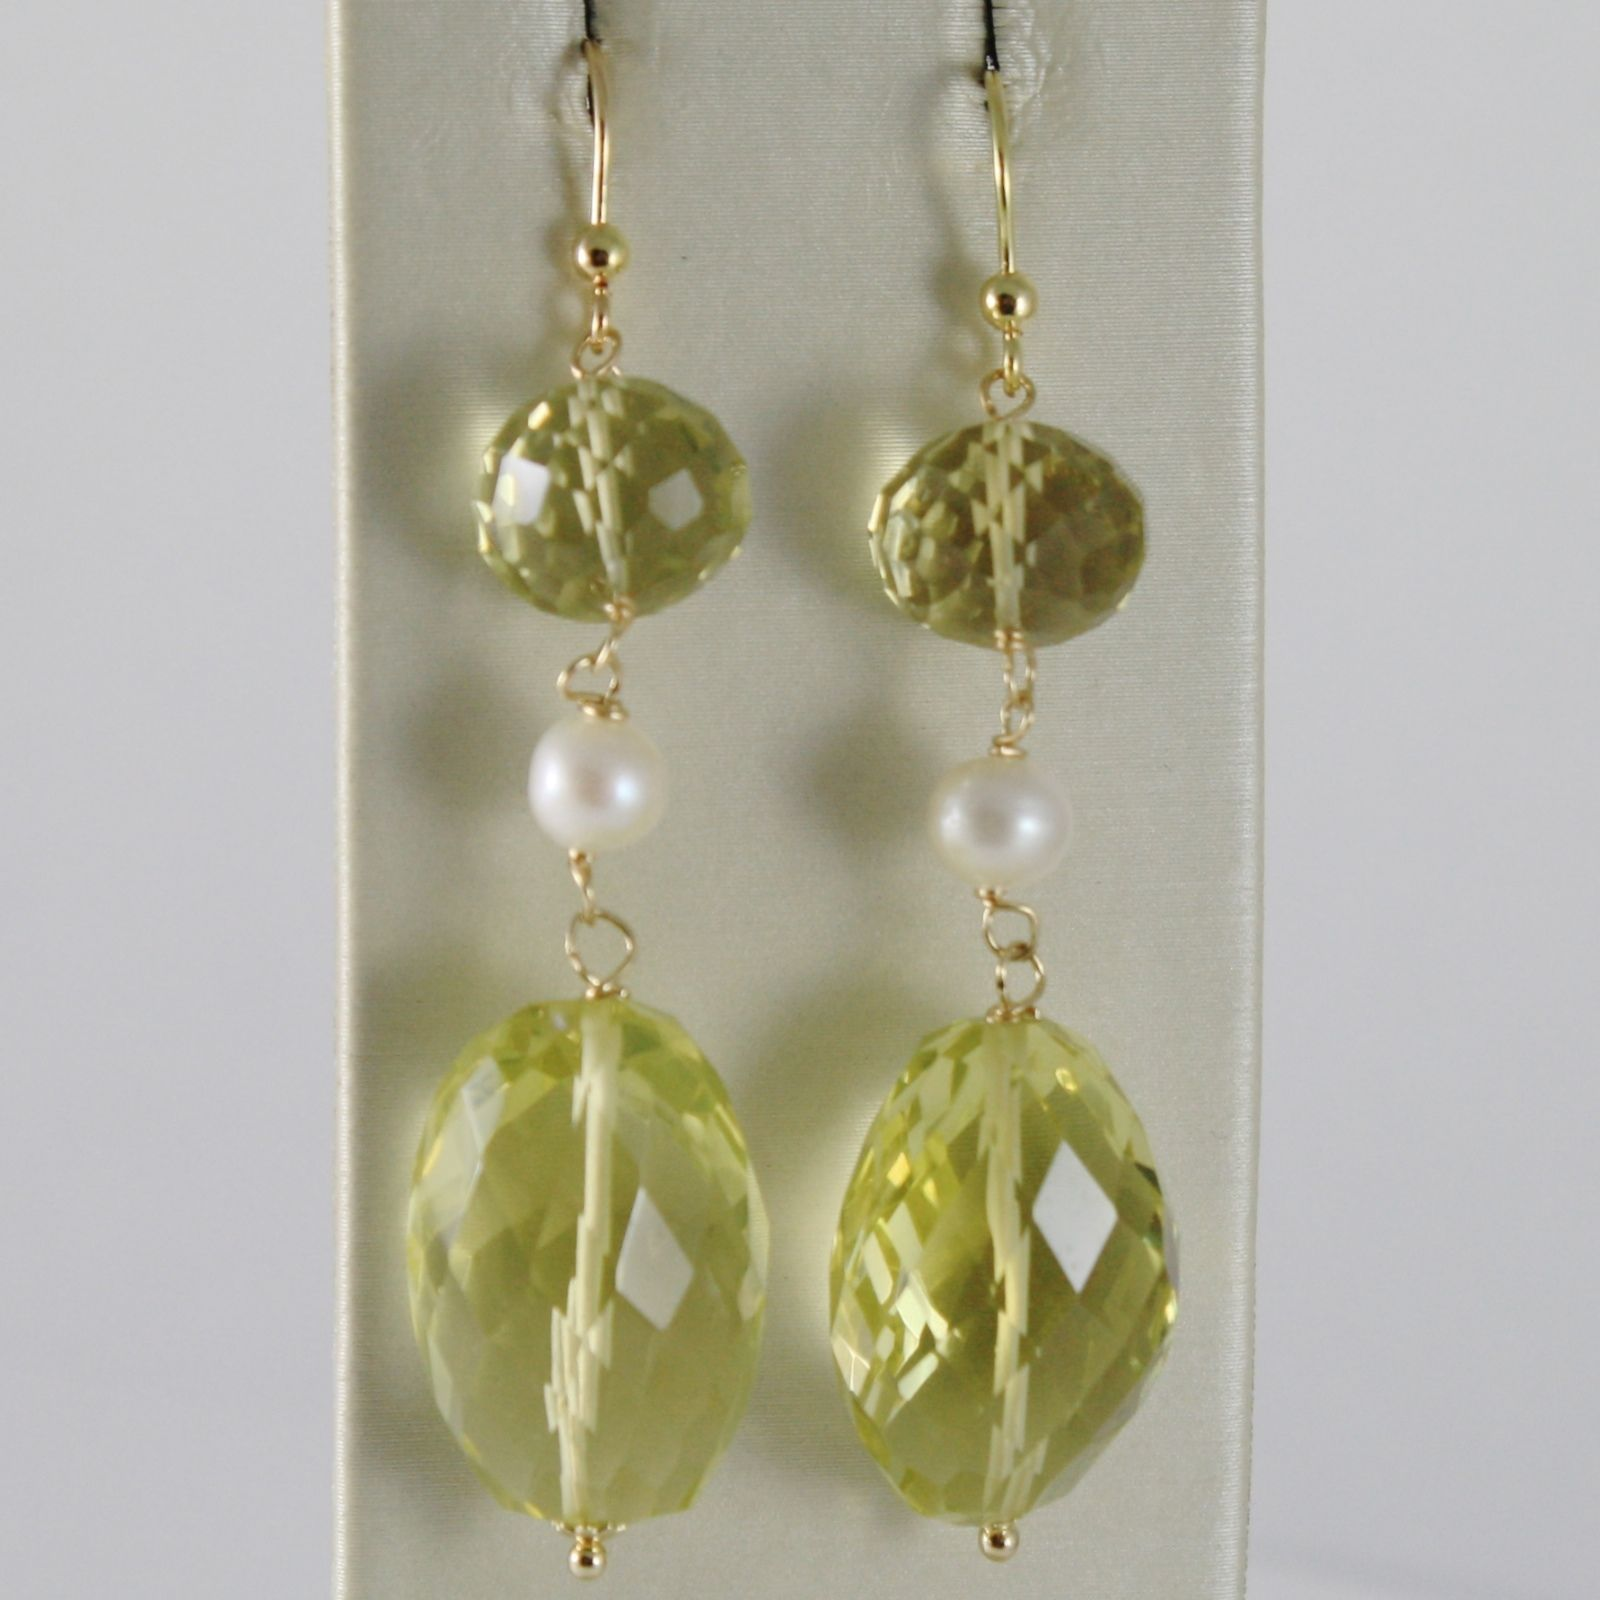 SOLID 18K YELLOW GOLD PENDANT EARRINGS WITH CUSHION LEMON QUARTZ AND PEARLS